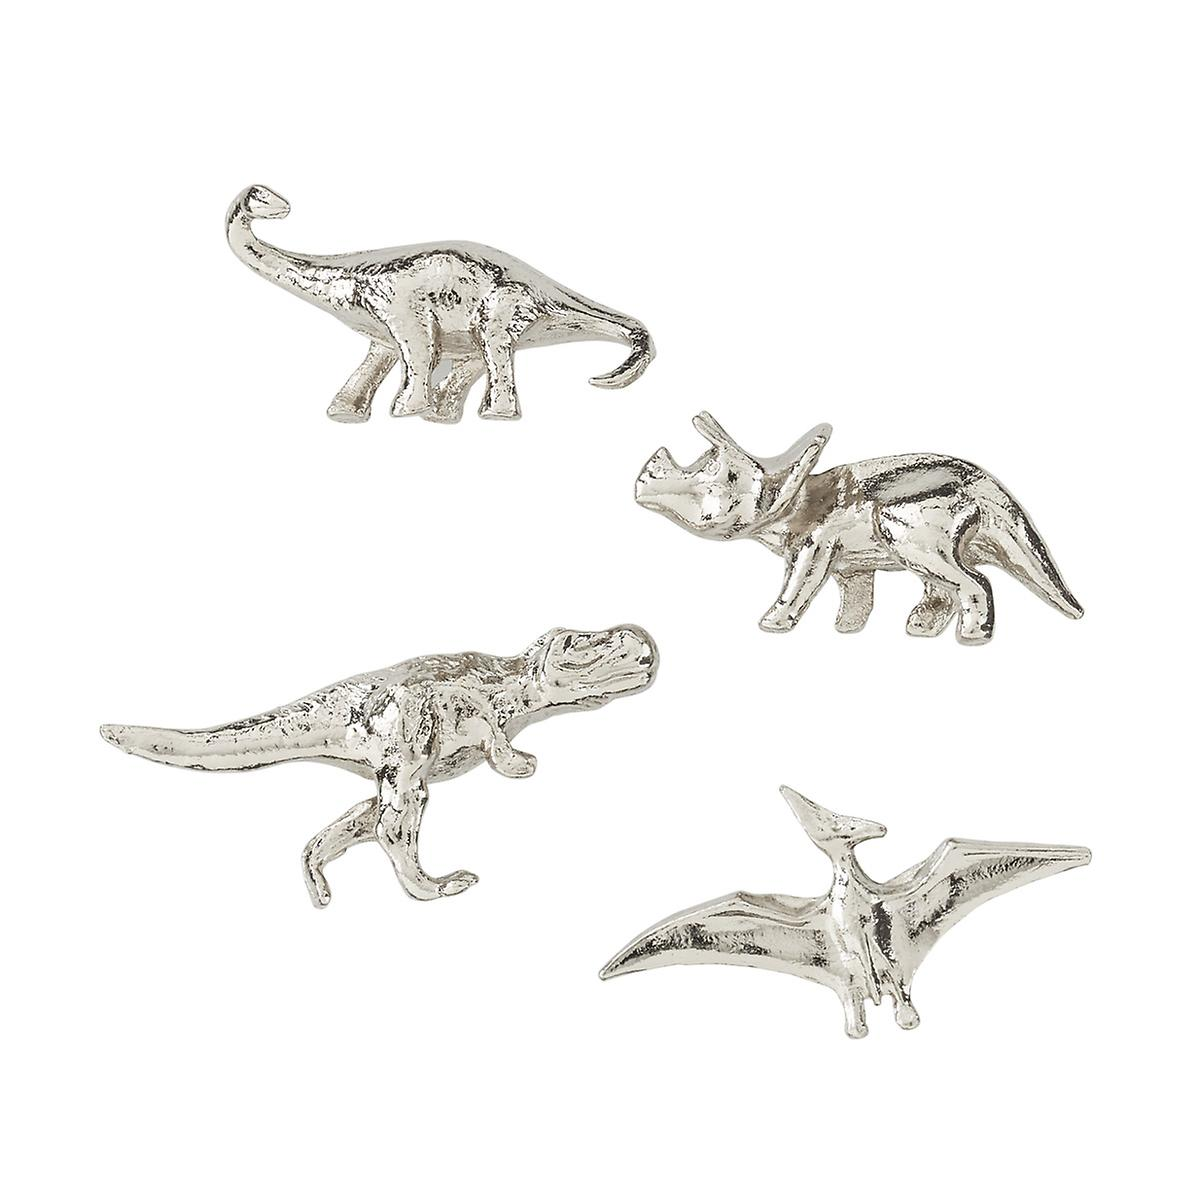 Three by Three Silver Dinosaur Cast Iron Magnets